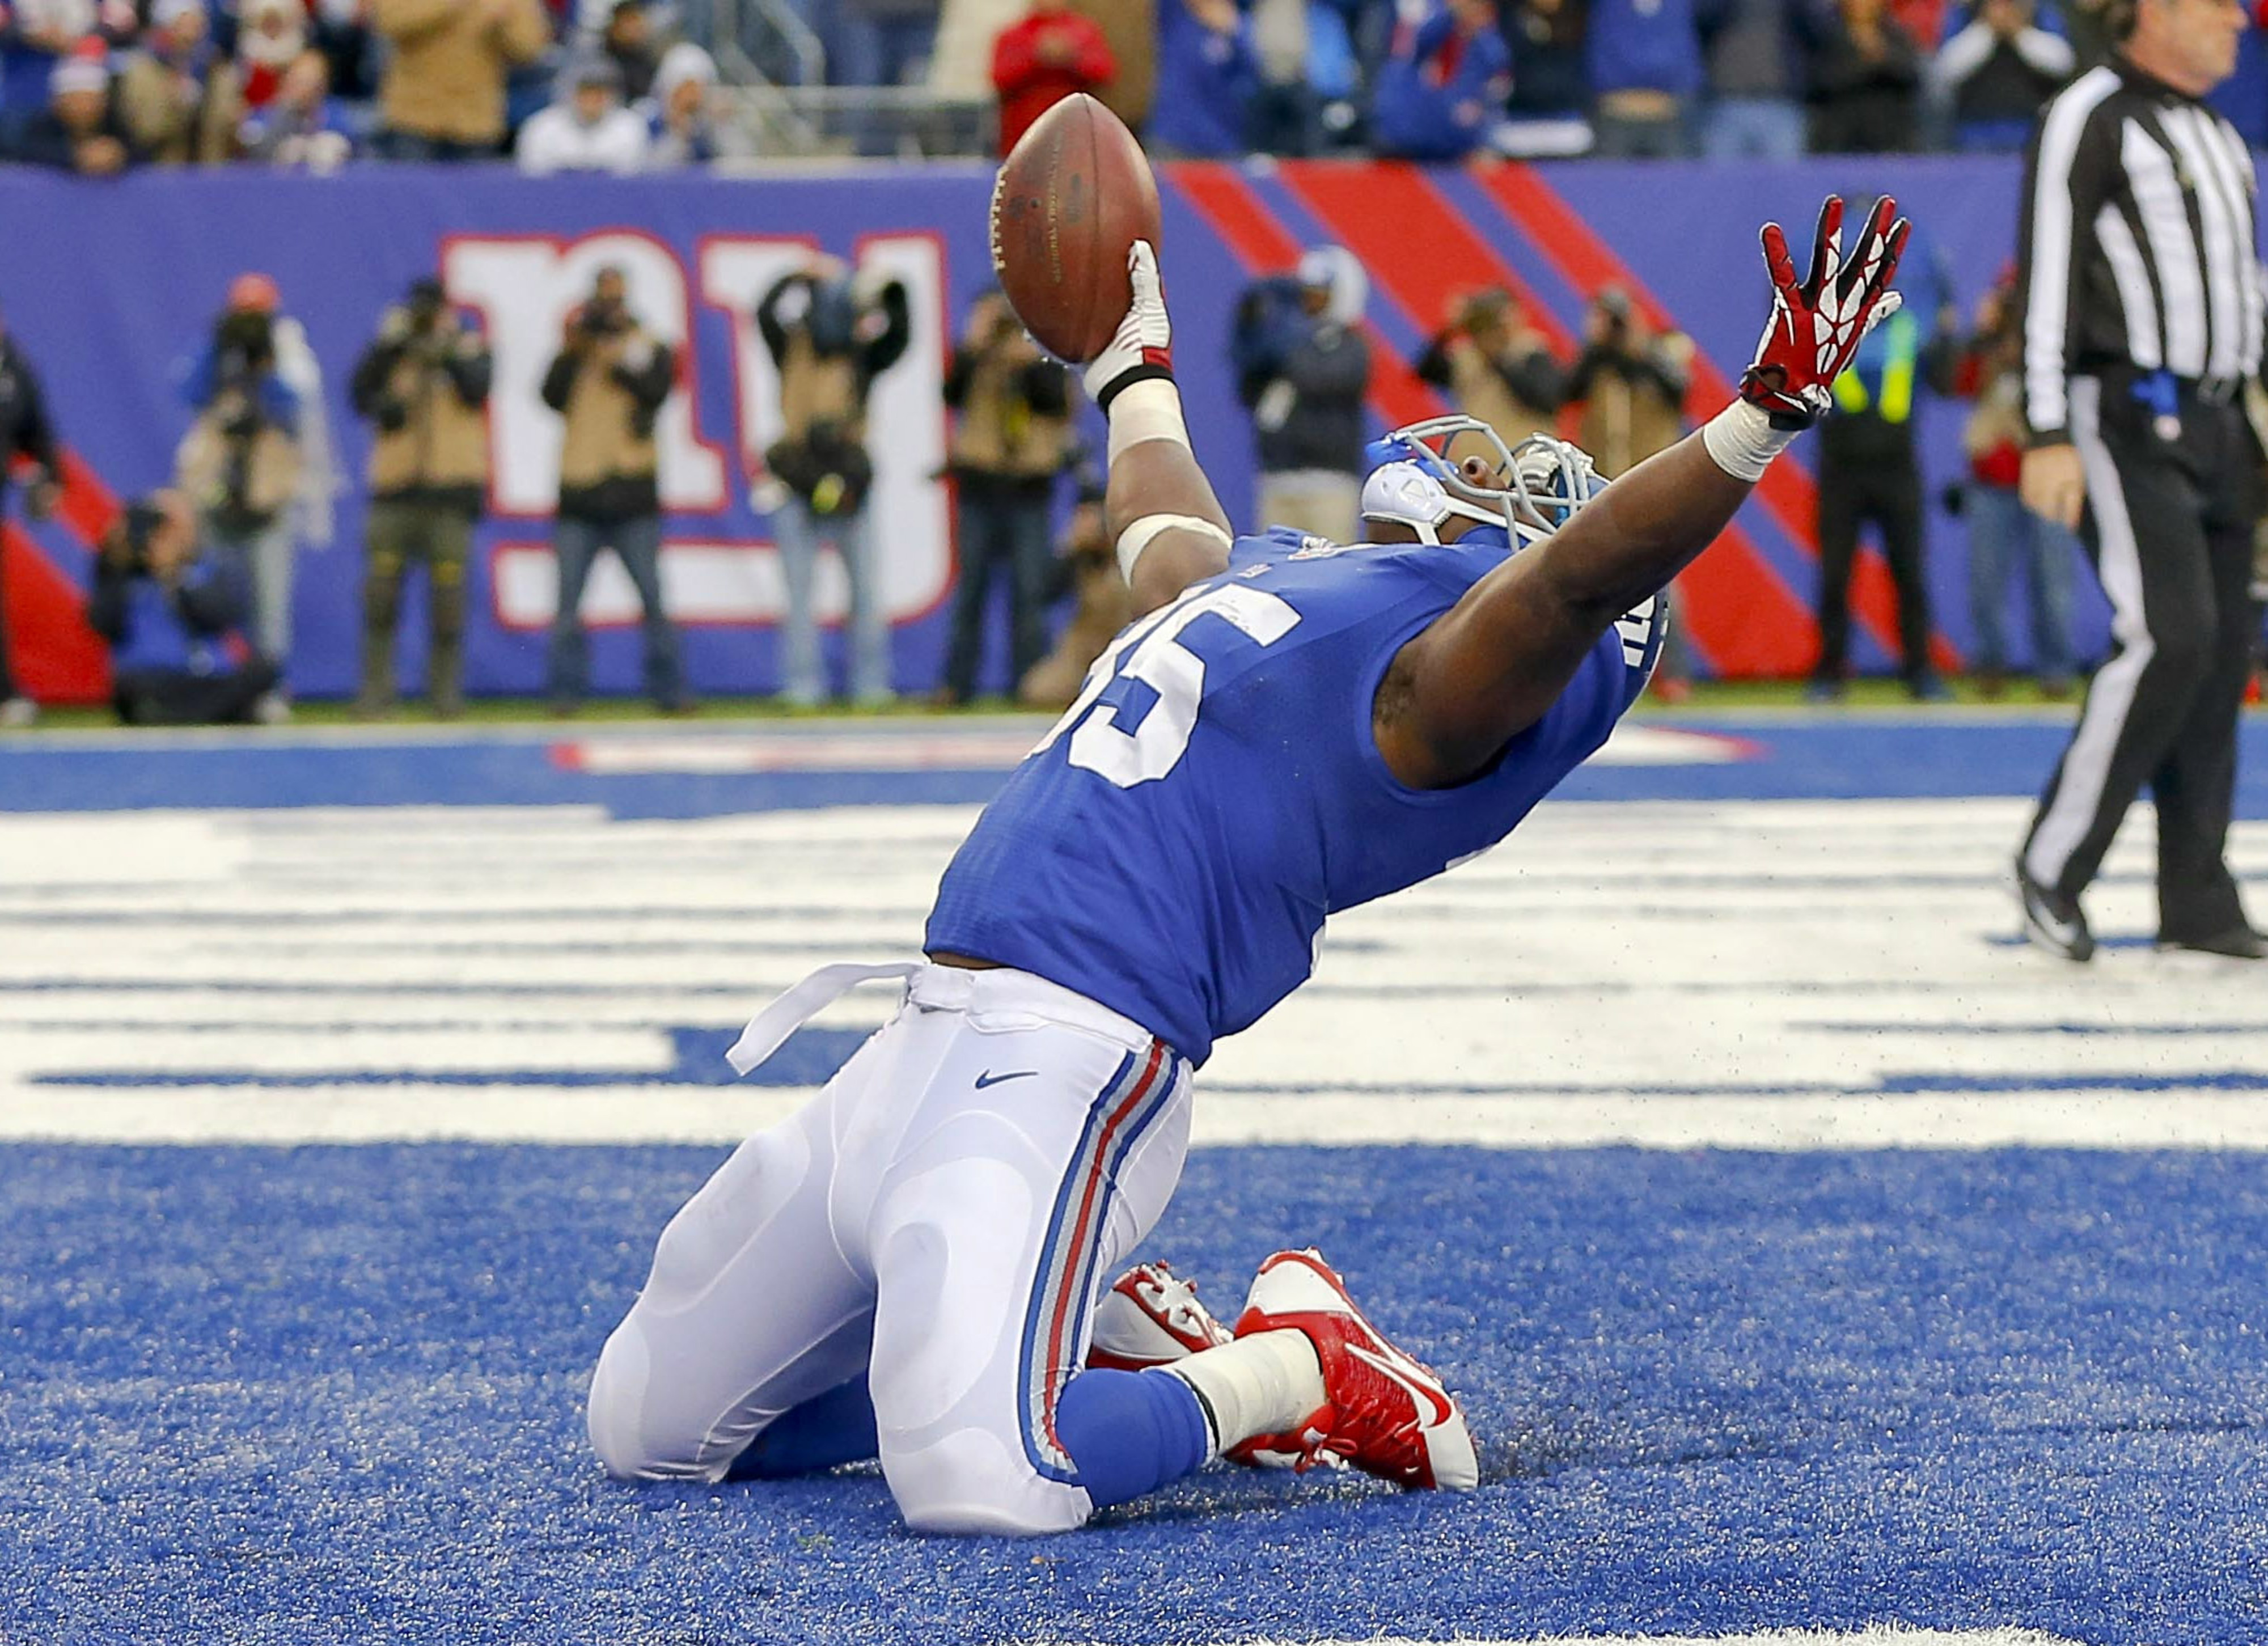 Andre Brown celebrates after scoring a touchdown on Sunday